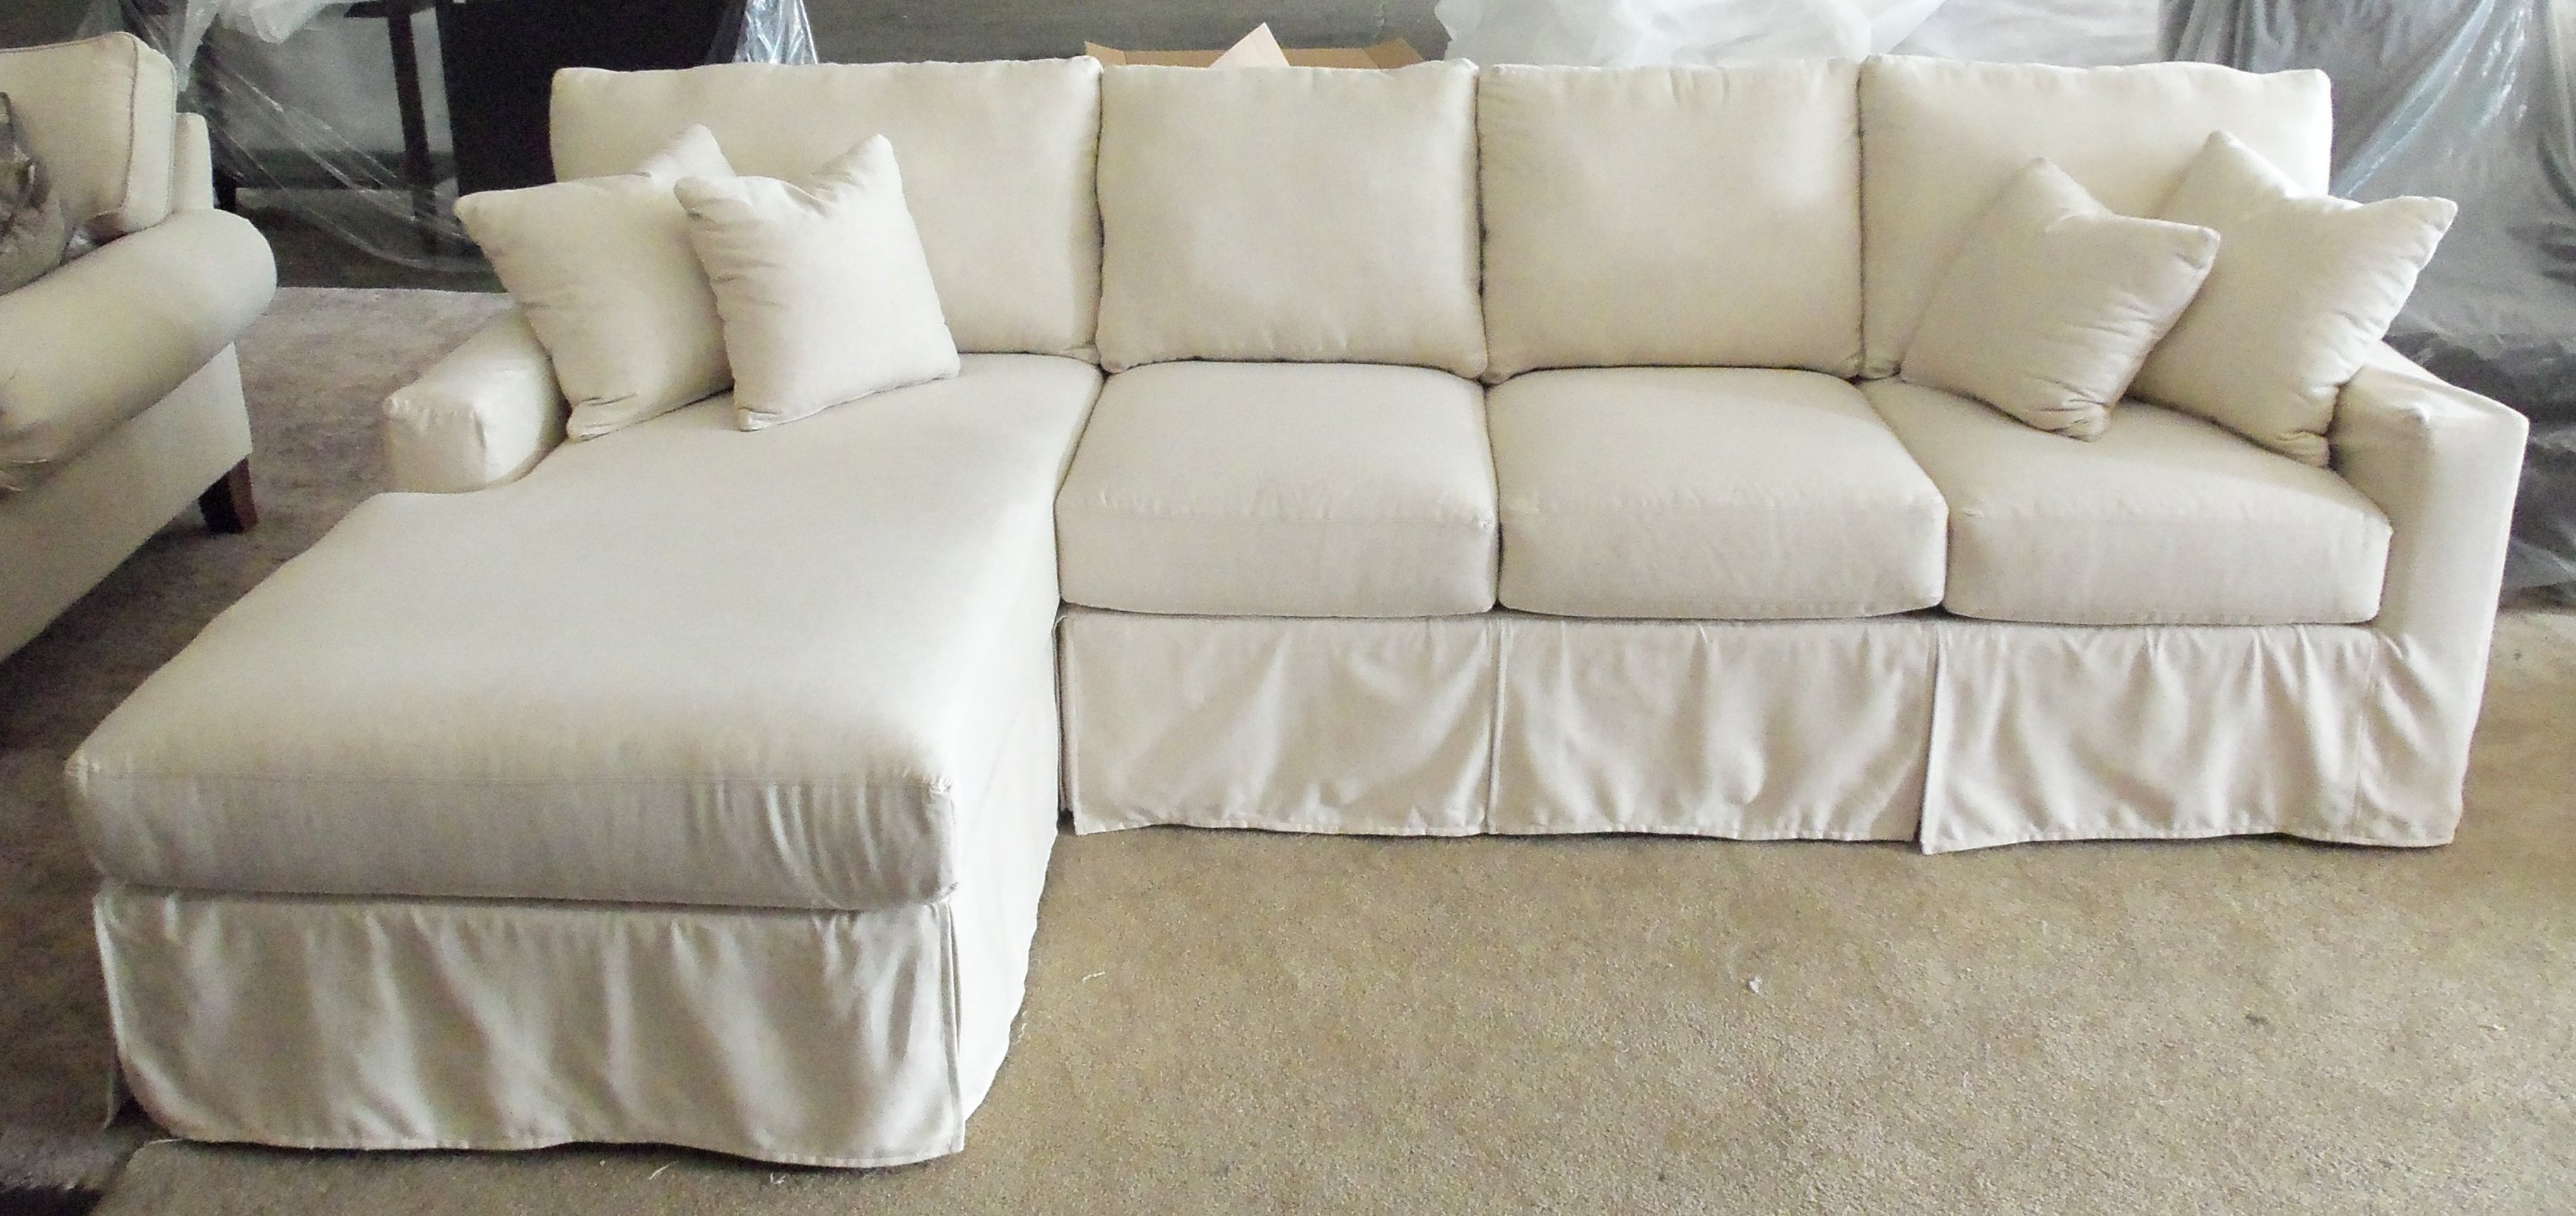 Most Recent Sectional Sofa With Microfiber Chaise Together Loveseat In With Regard To Chaise Slipcovers (View 4 of 15)